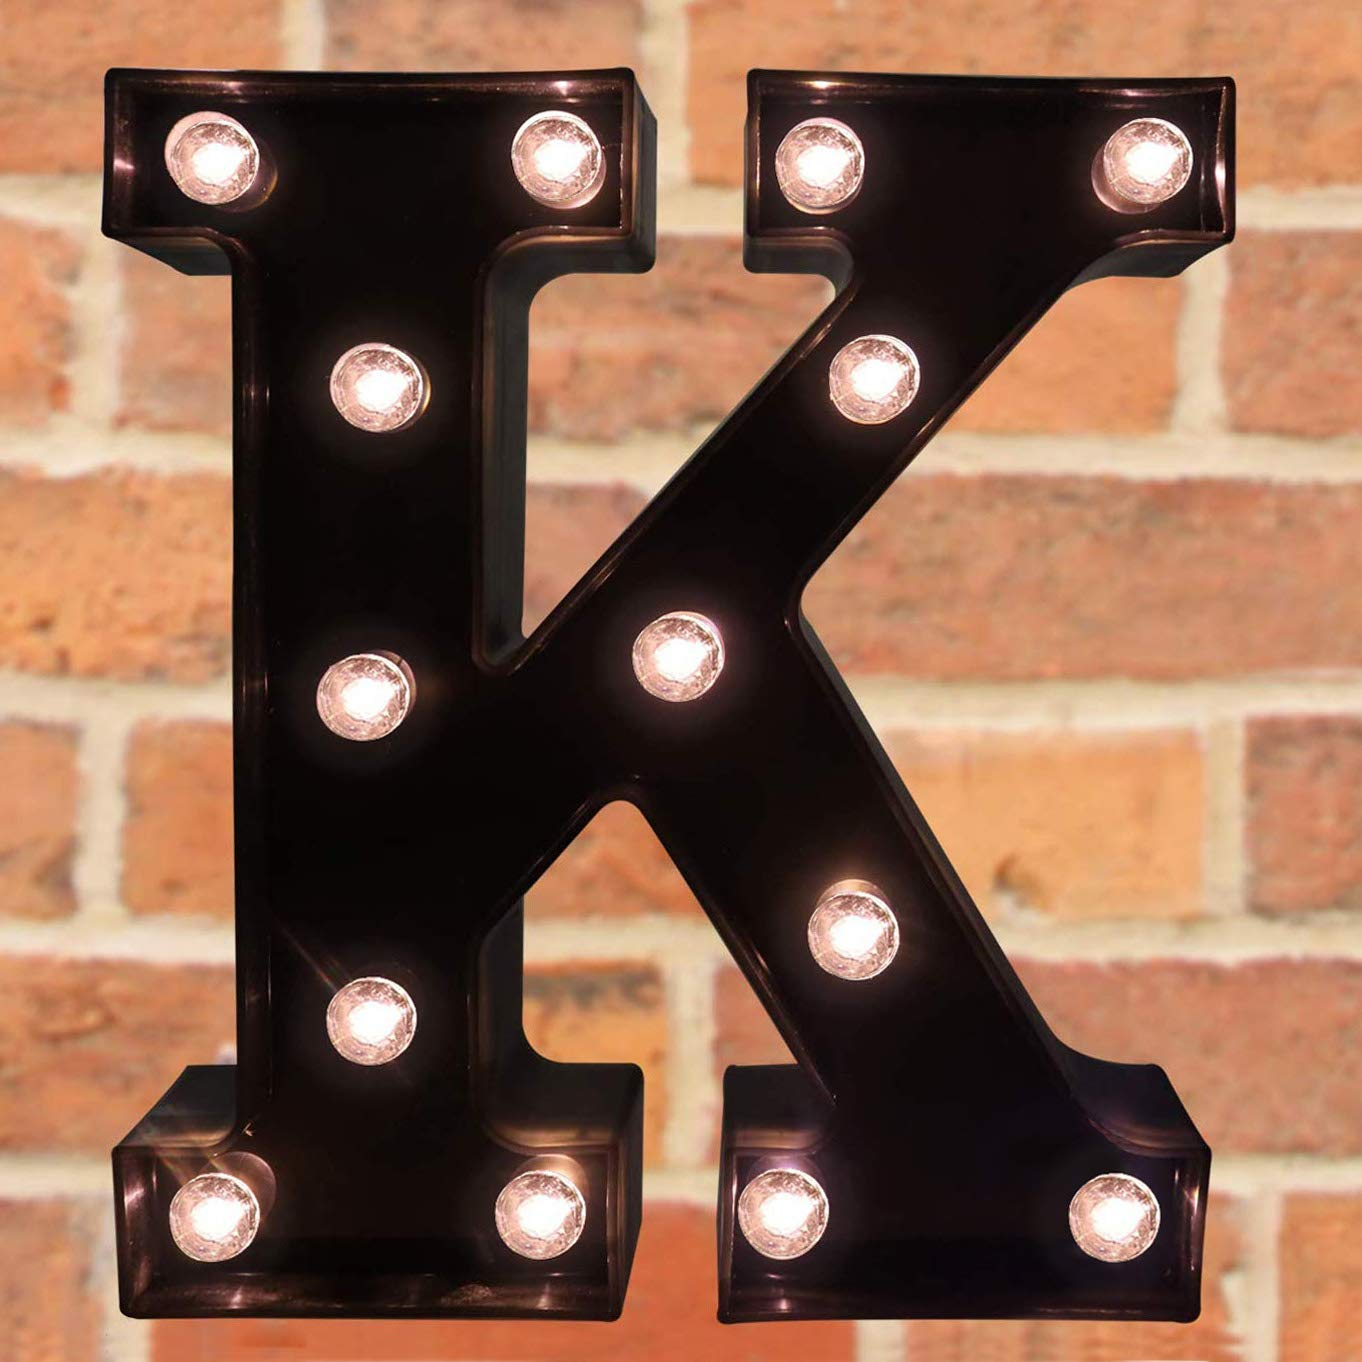 Pooqla Decorative LED Illuminated Letter Marquee Sign - Alphabet Marquee Letters with Lights for Wedding Birthday Party Christmas Night Light Lamp Home Bar Decoration K, Black